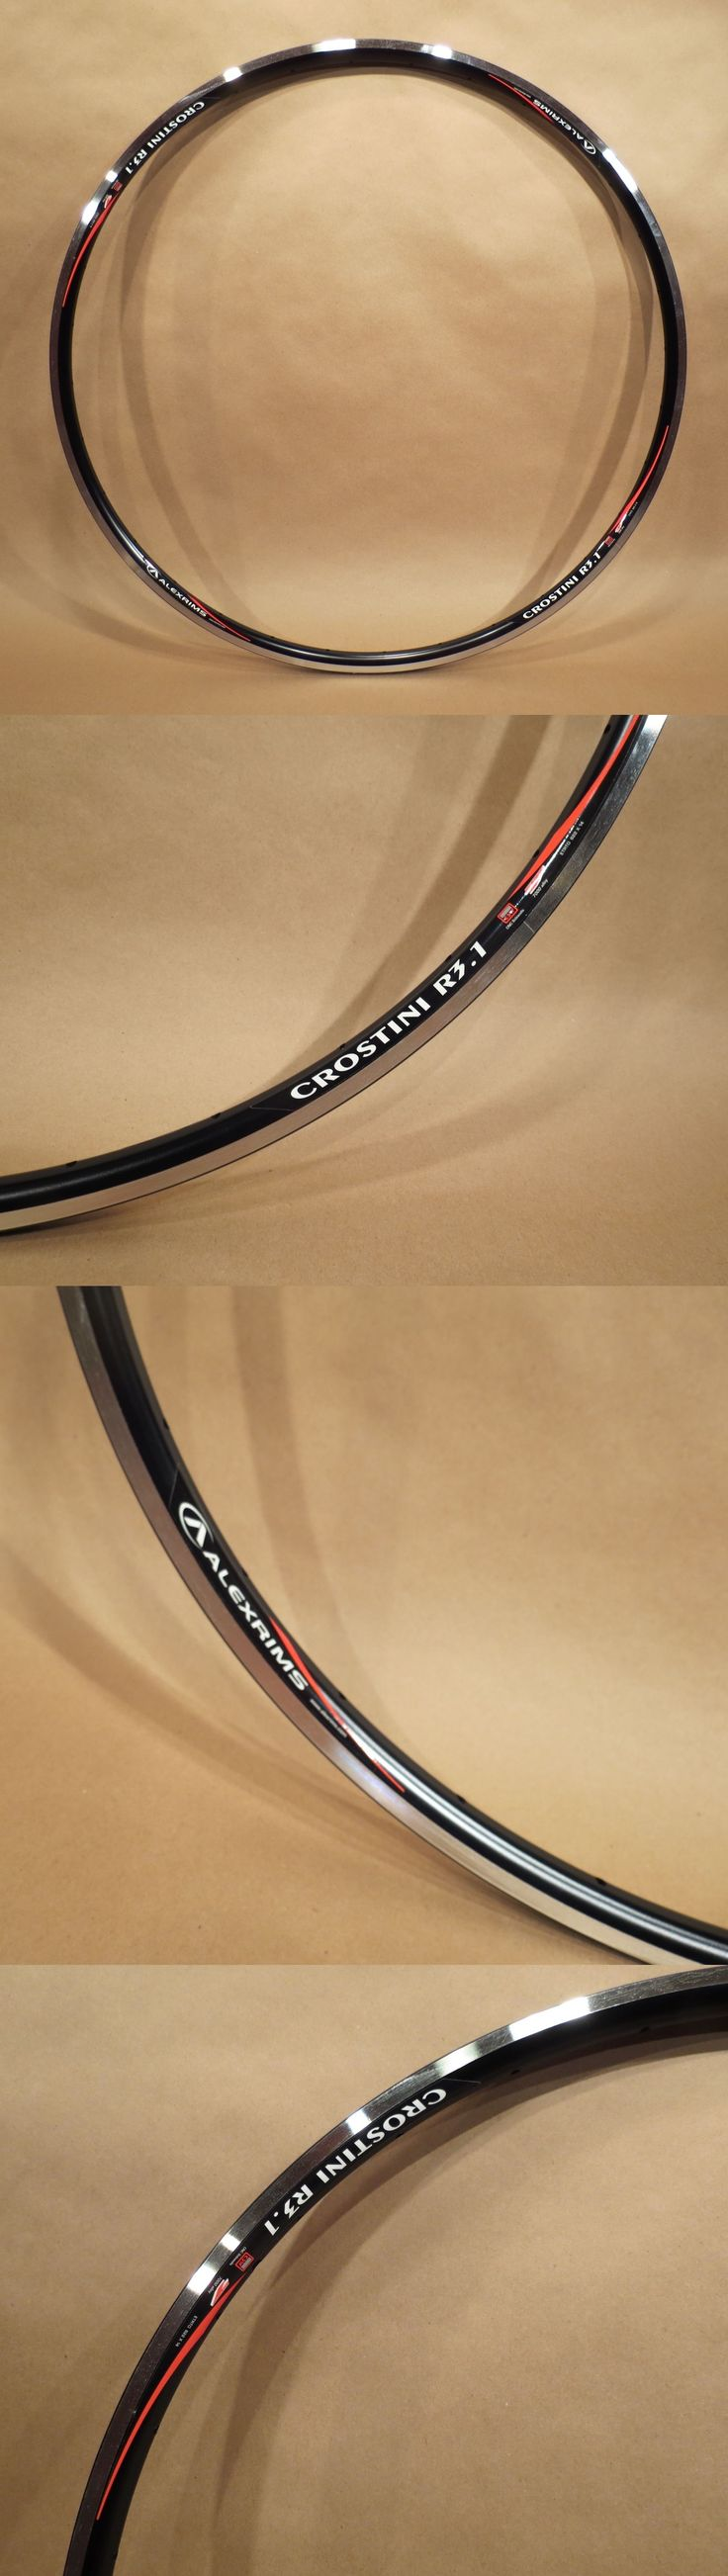 Rims 177821: Alex Rims Crostini R3.1 | 32H | 700C Bicycle | Clincher | Black | Nos | Alexrims -> BUY IT NOW ONLY: $62.99 on eBay!